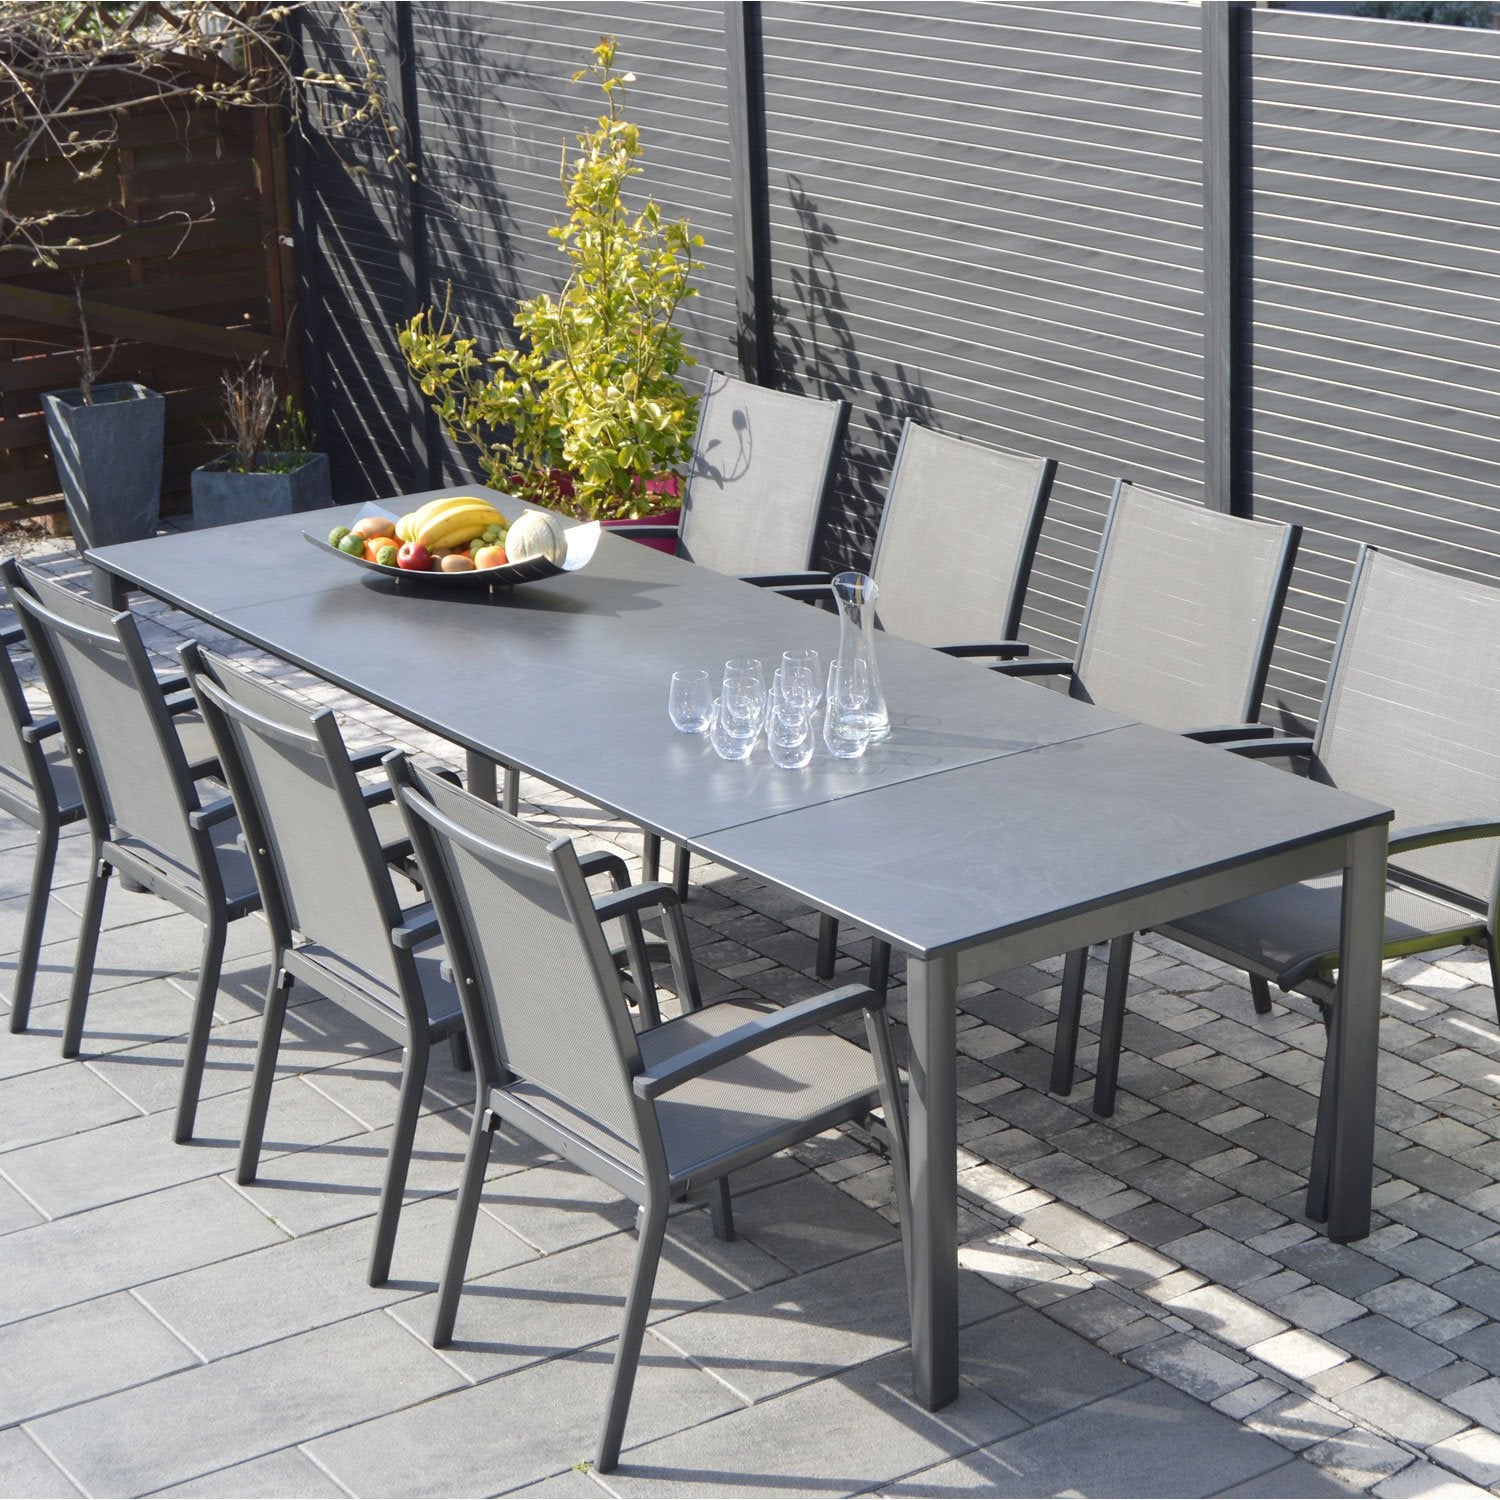 Salon de jardin puroplan aluminium gris anthracite 10 for Table exterieur 10 personnes